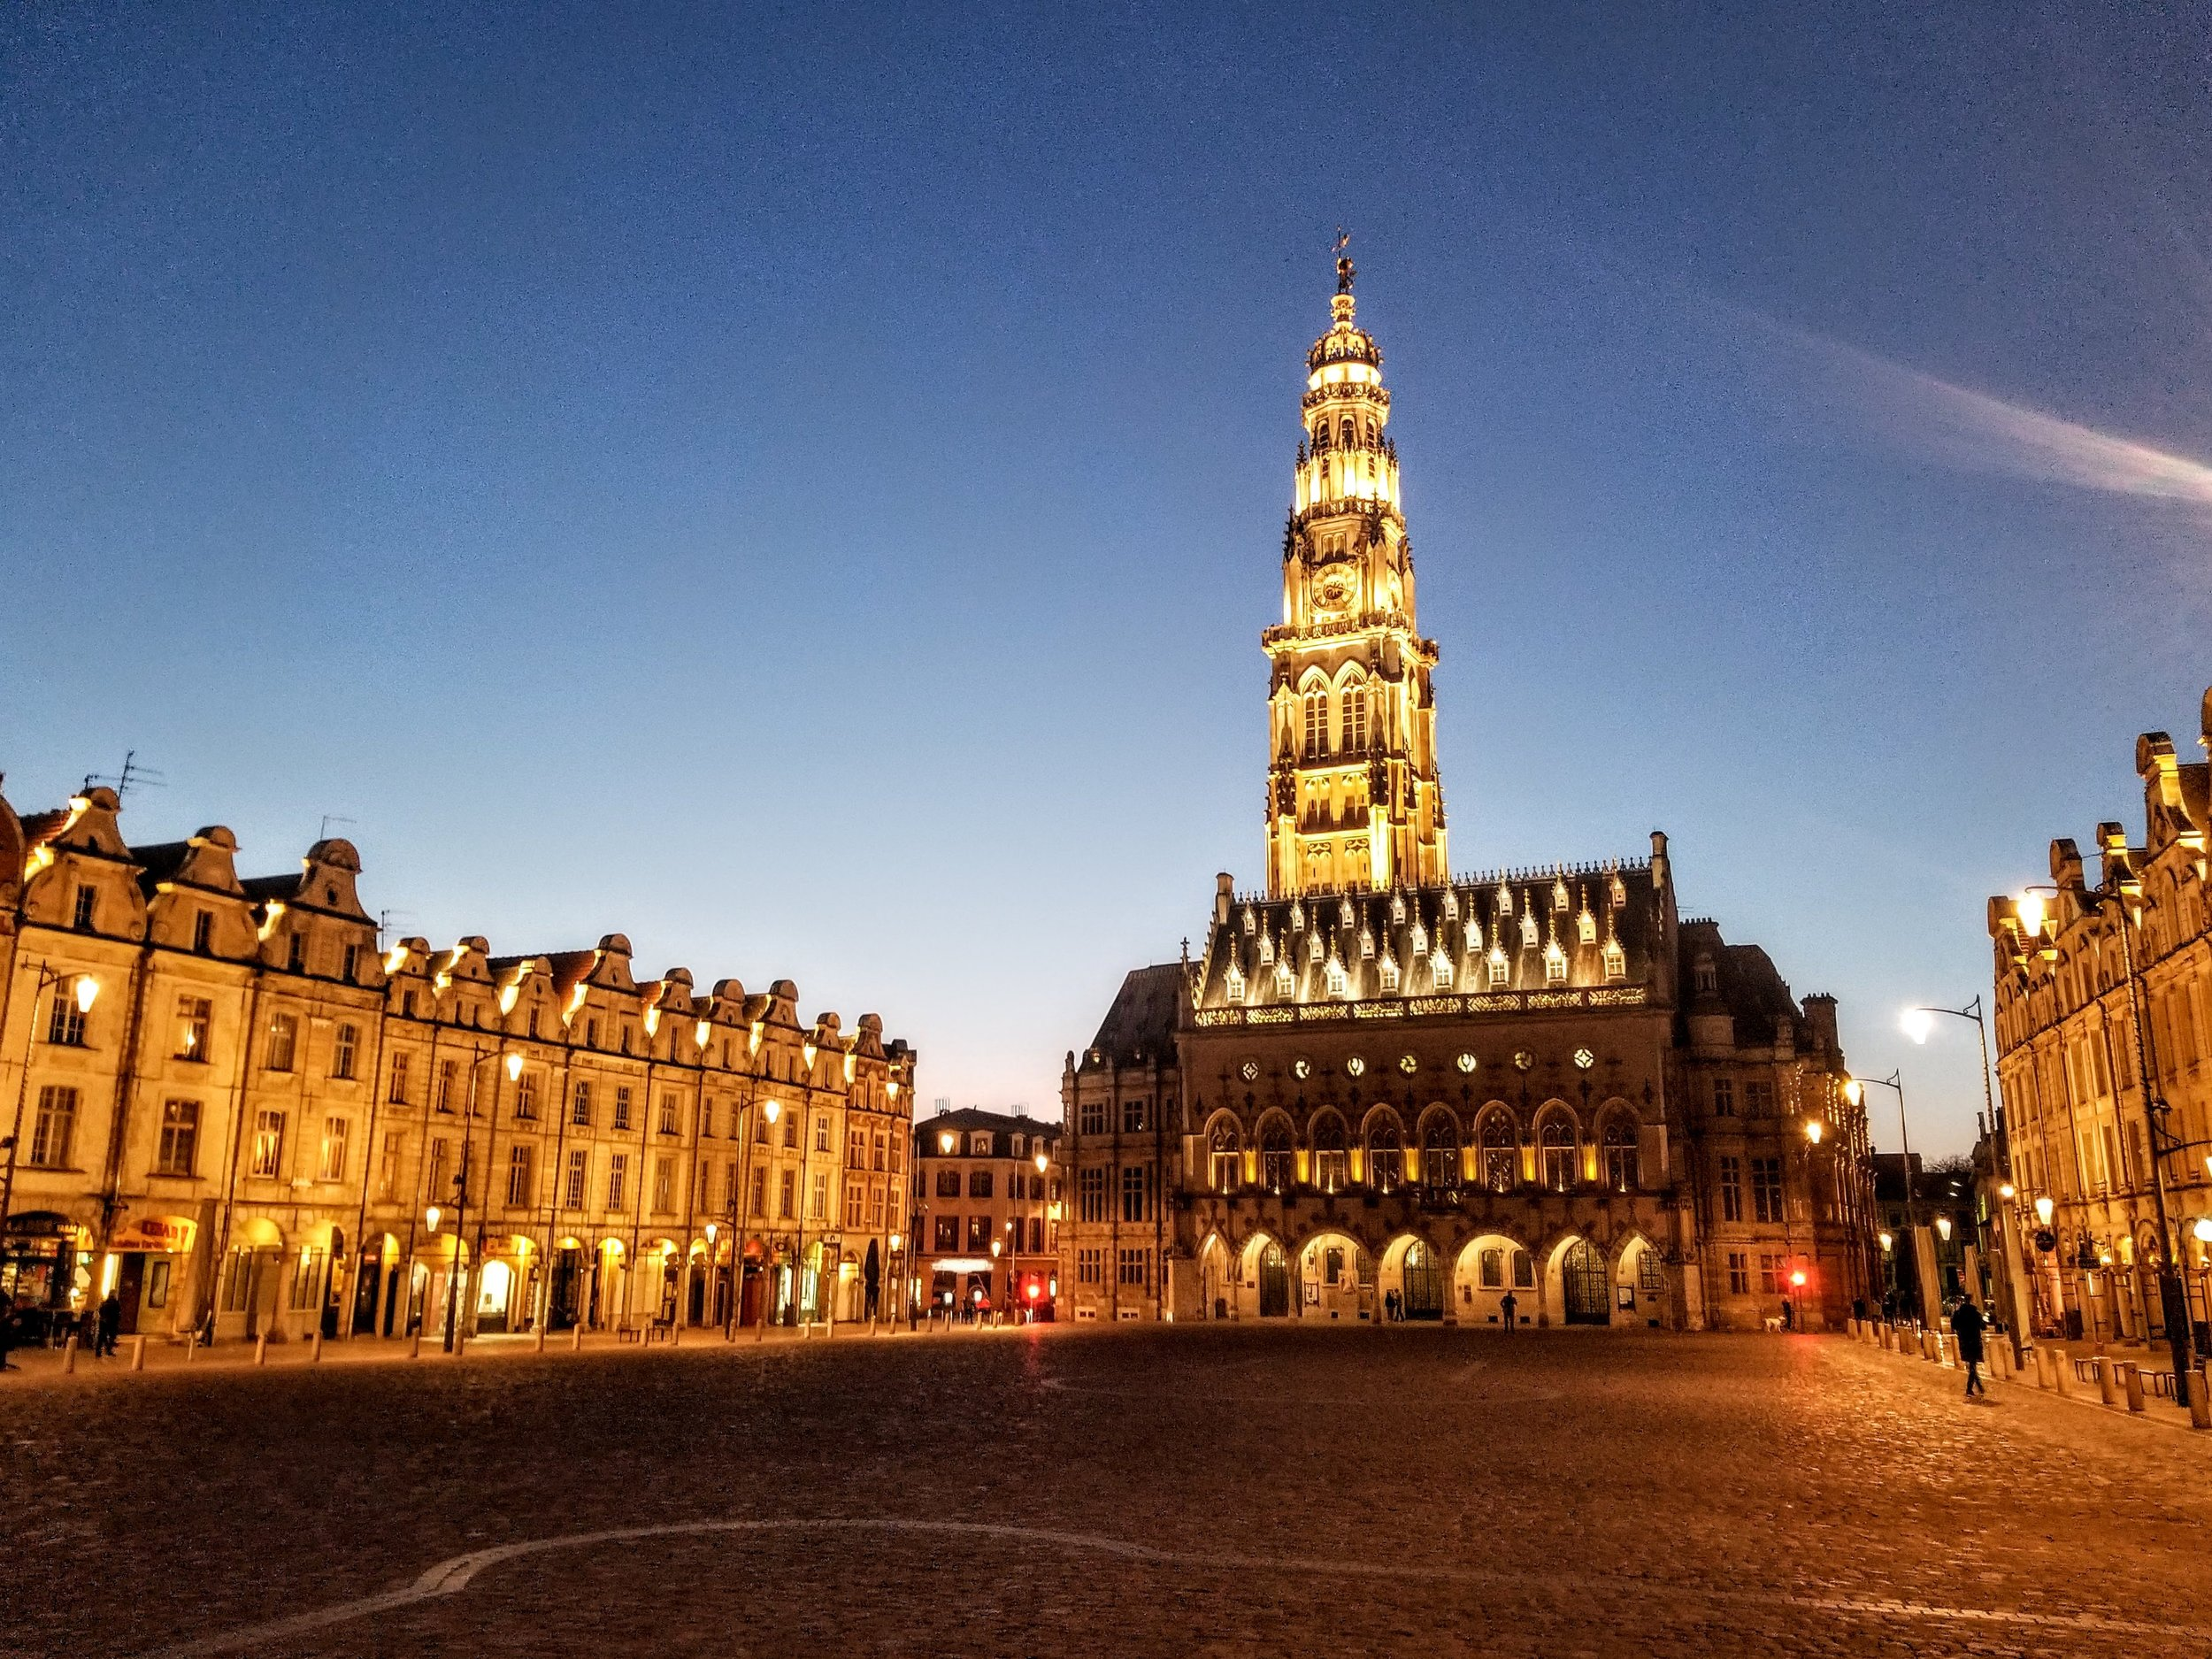 One of 2 town squares in Arras. In the summer, this square is packed with tables and people. In March, not so much. But still beautiful.